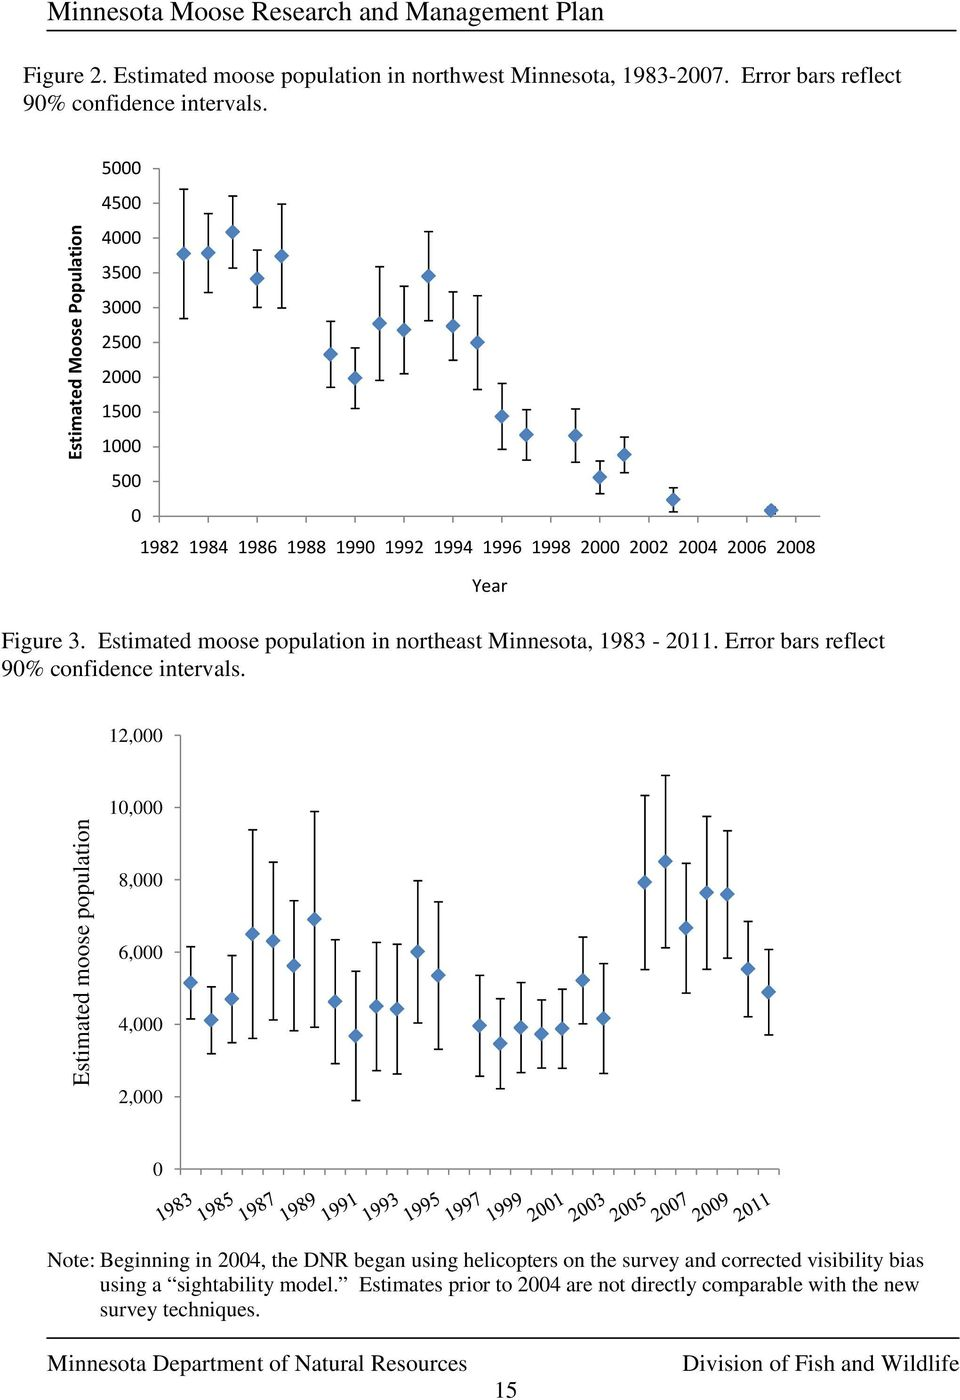 Estimated moose population in northeast Minnesota, 1983-2011. Error bars reflect 90% confidence intervals.